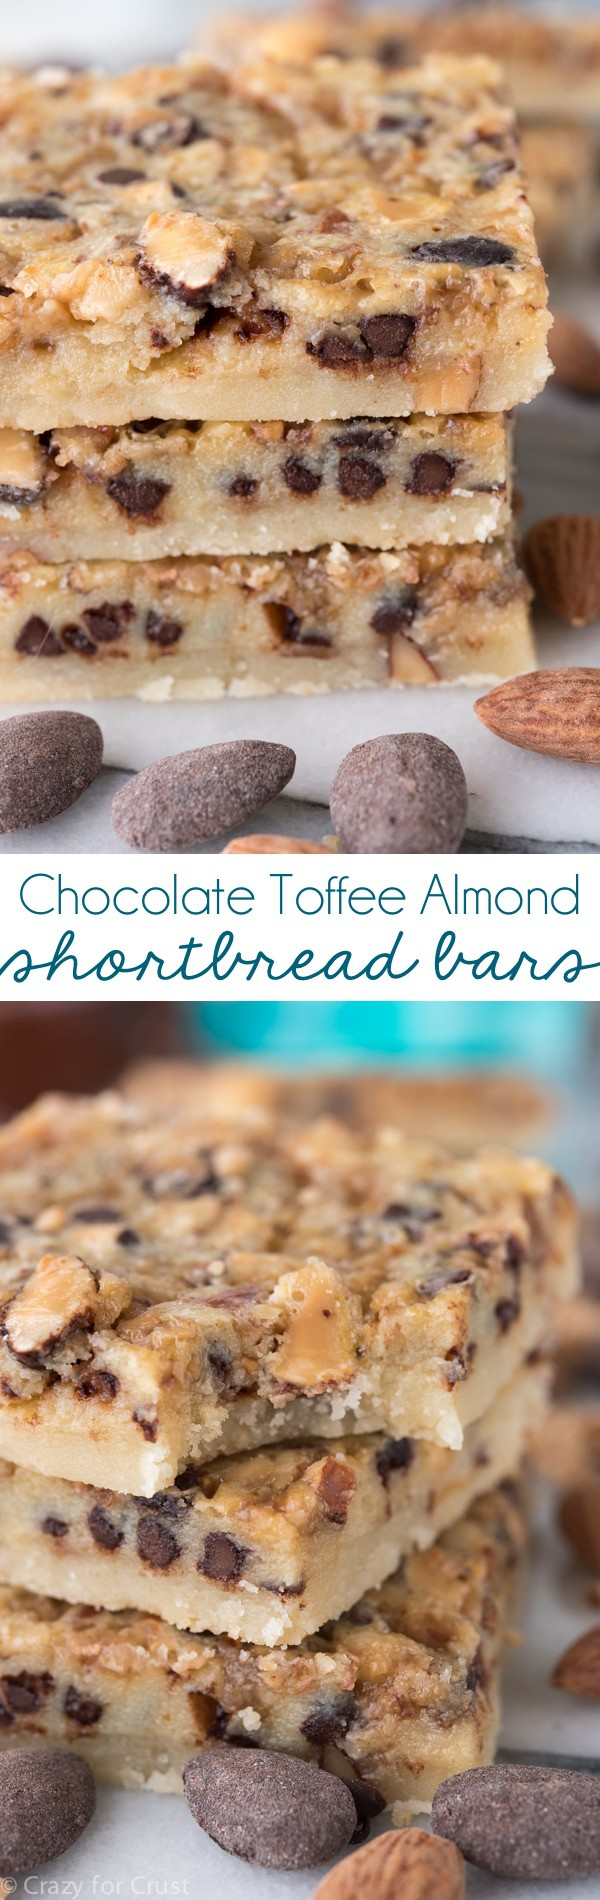 These Chocolate Toffee Almond Shortbread Bars have a thick shortbread crust and a gooey filling with chocolate, toffee, and almonds collage